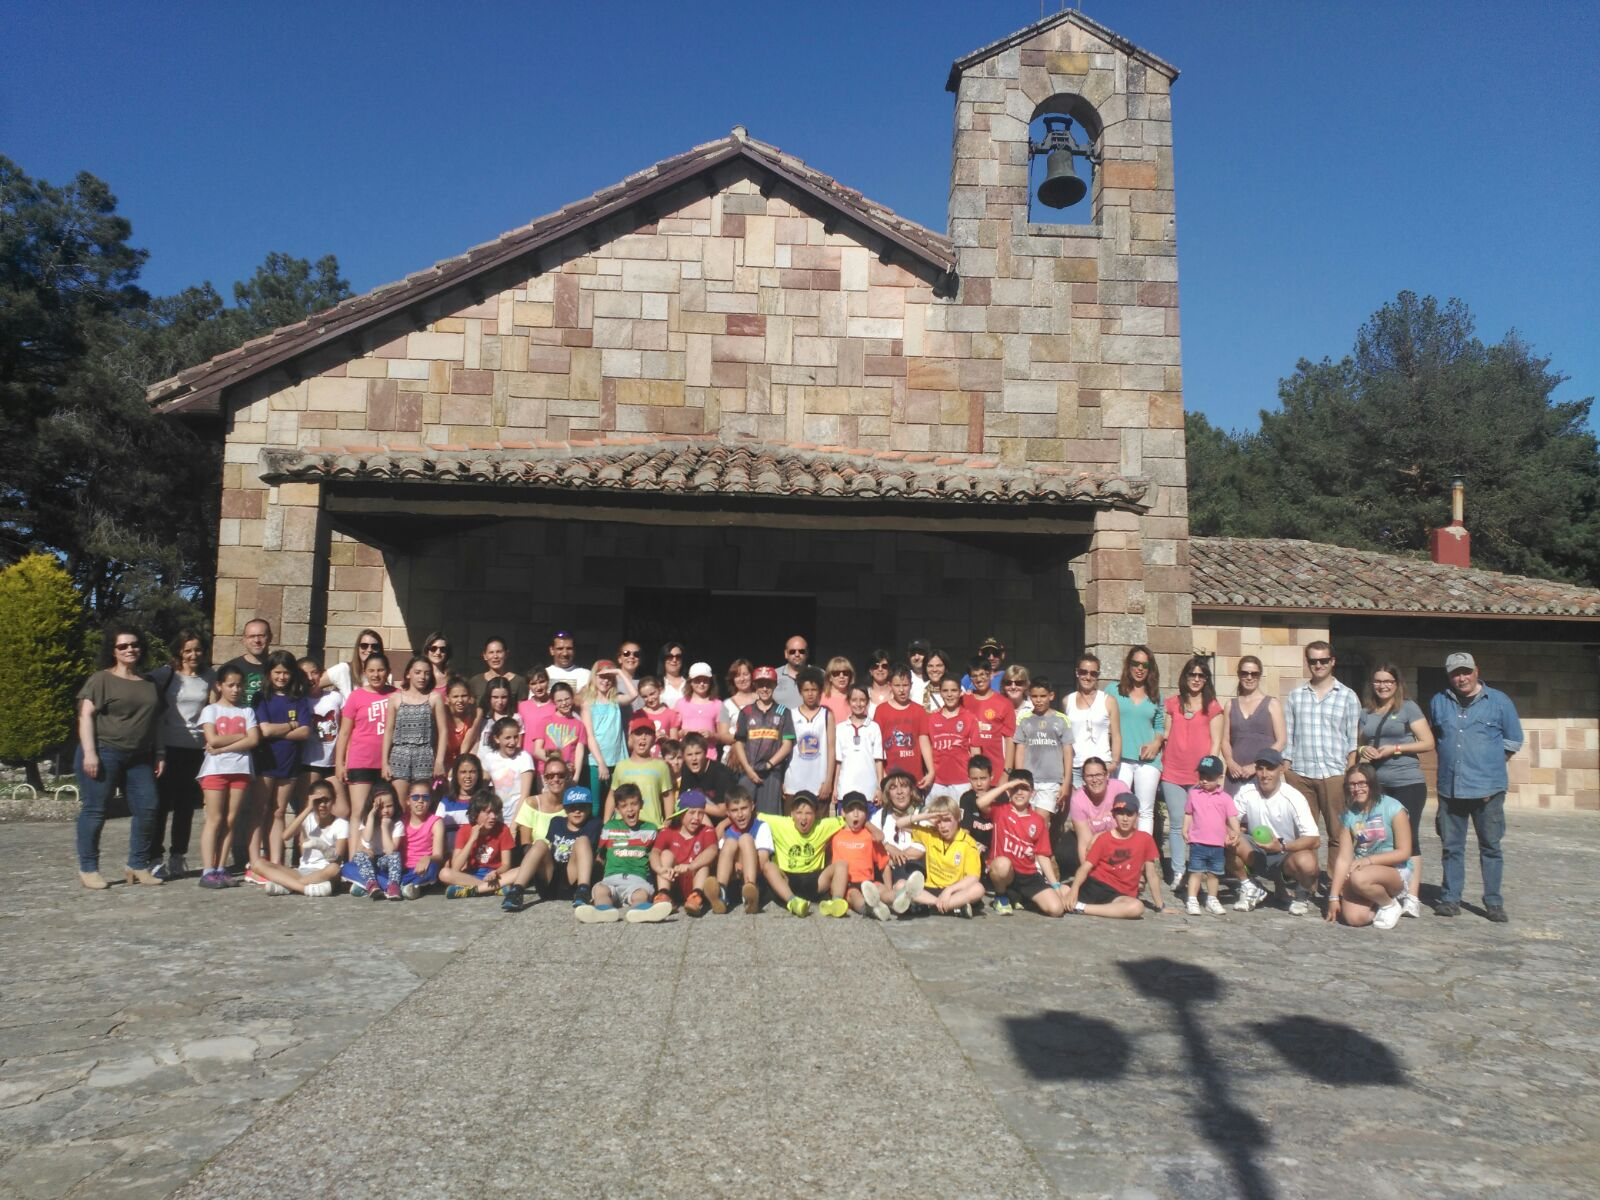 @colsangregorio & @HTPDSchool students celebrate a picnic, when the #twinpartner turns into friends #etwinning #etwinningcyl #twinmooc https://t.co/xwHXxx3QwT